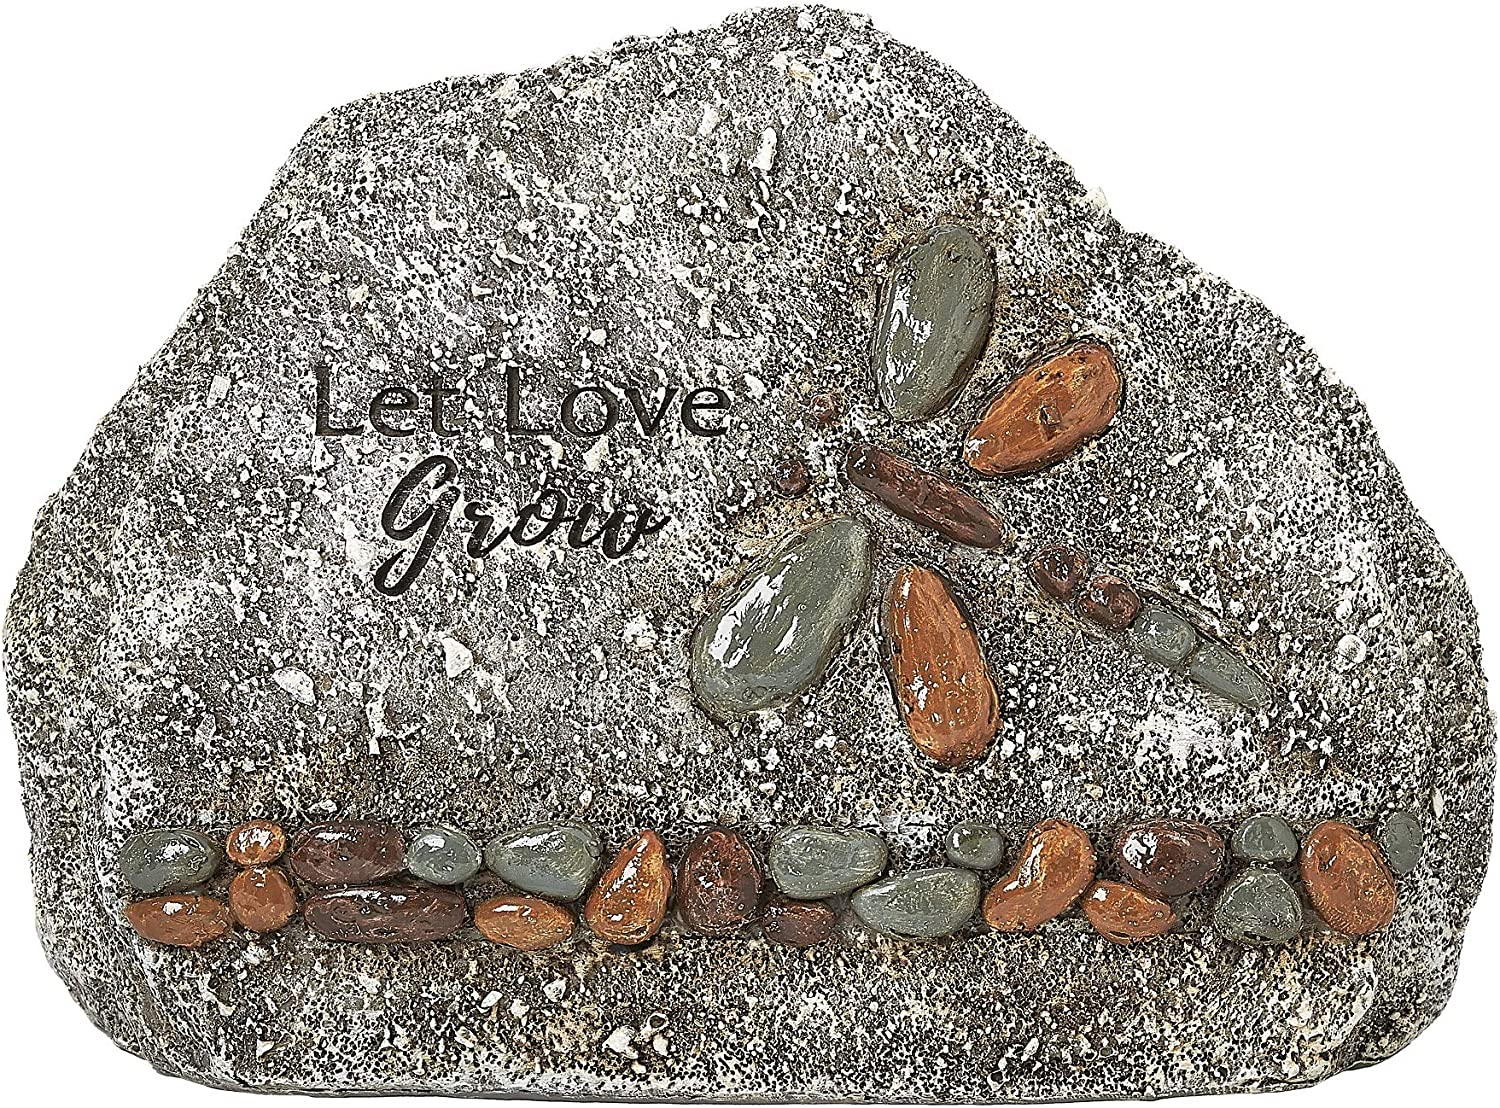 Roman Garden - Dragonfly Garden Stone, 5.5H, Garden Collection, Resin and Stone, Decorative, Garden Gift, Home Outdoor Decor, Durable, Long Lasting